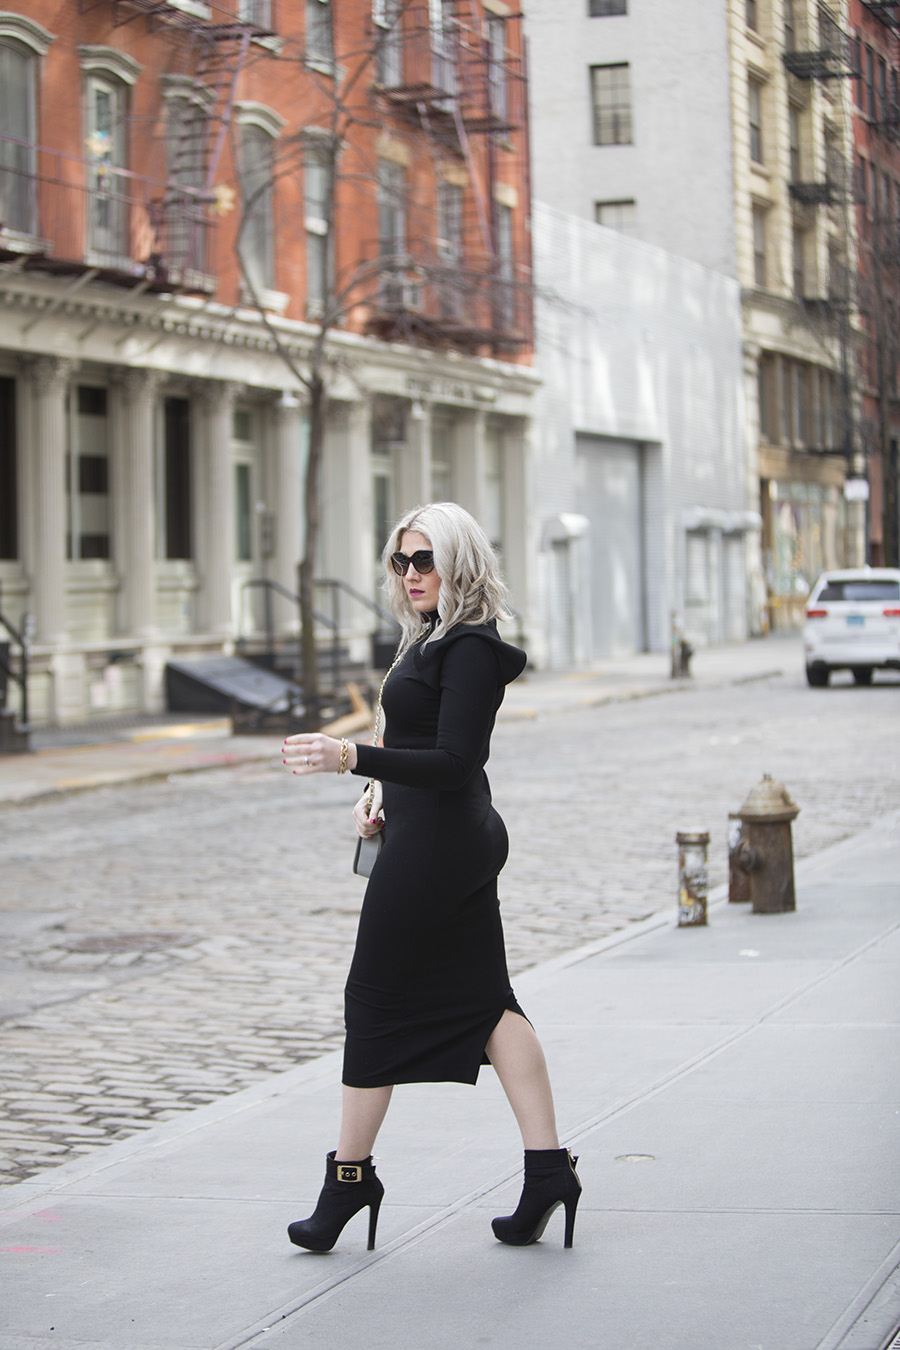 NYFW: A Little Black Dress for Winter